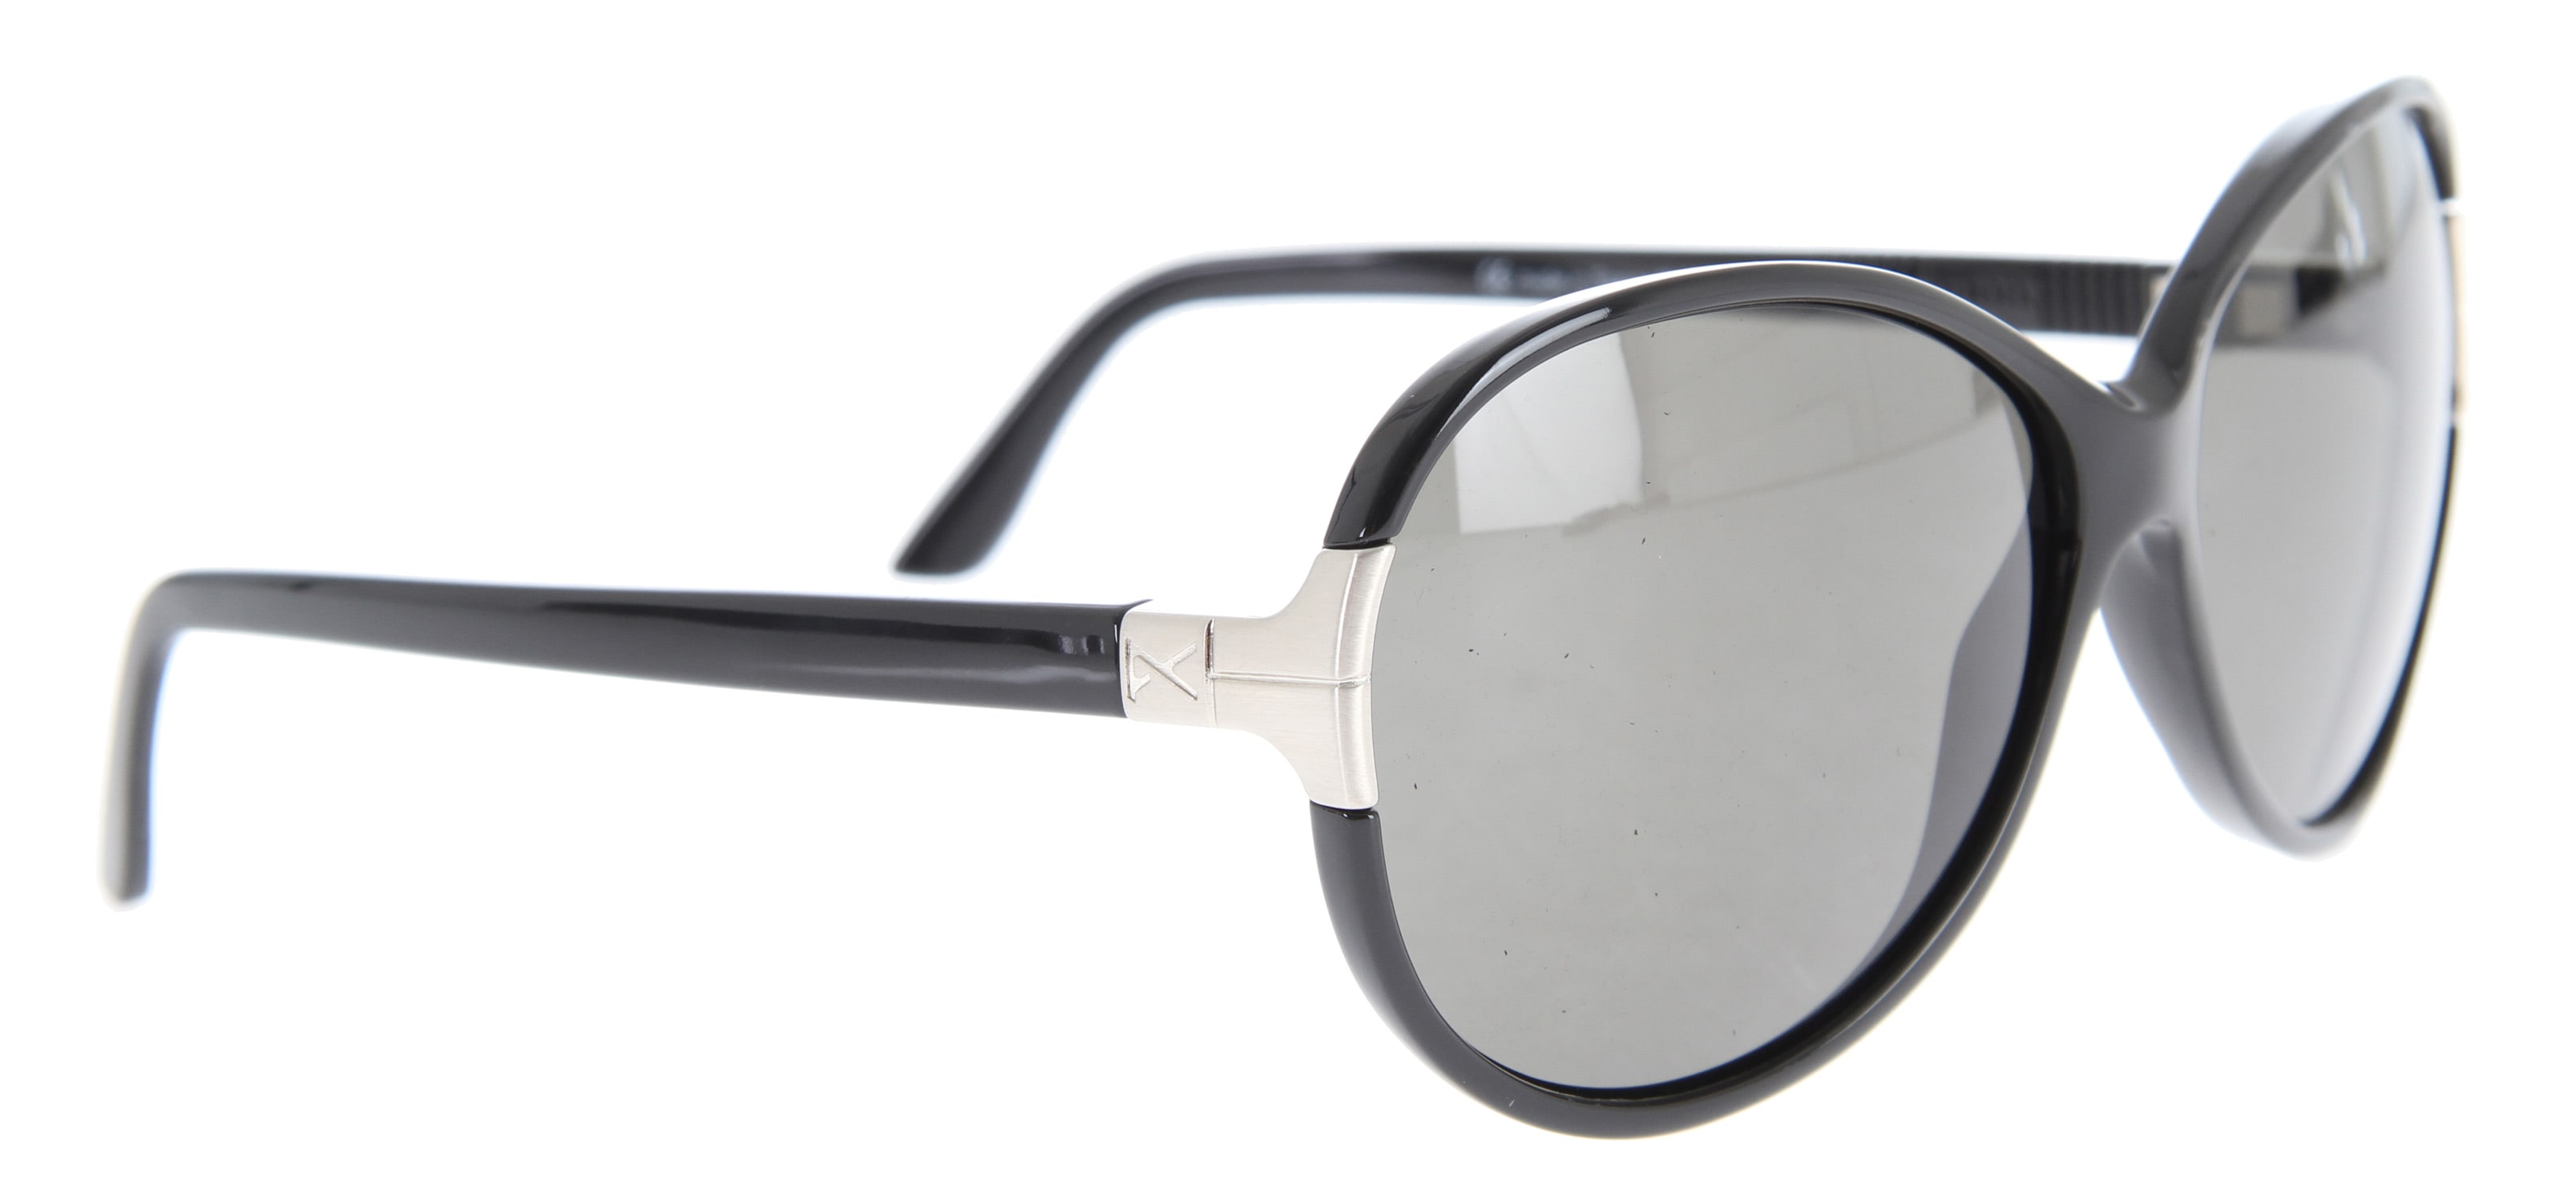 Shop for Anon Sundae Sunglasses Black/Grey Lens - Women's